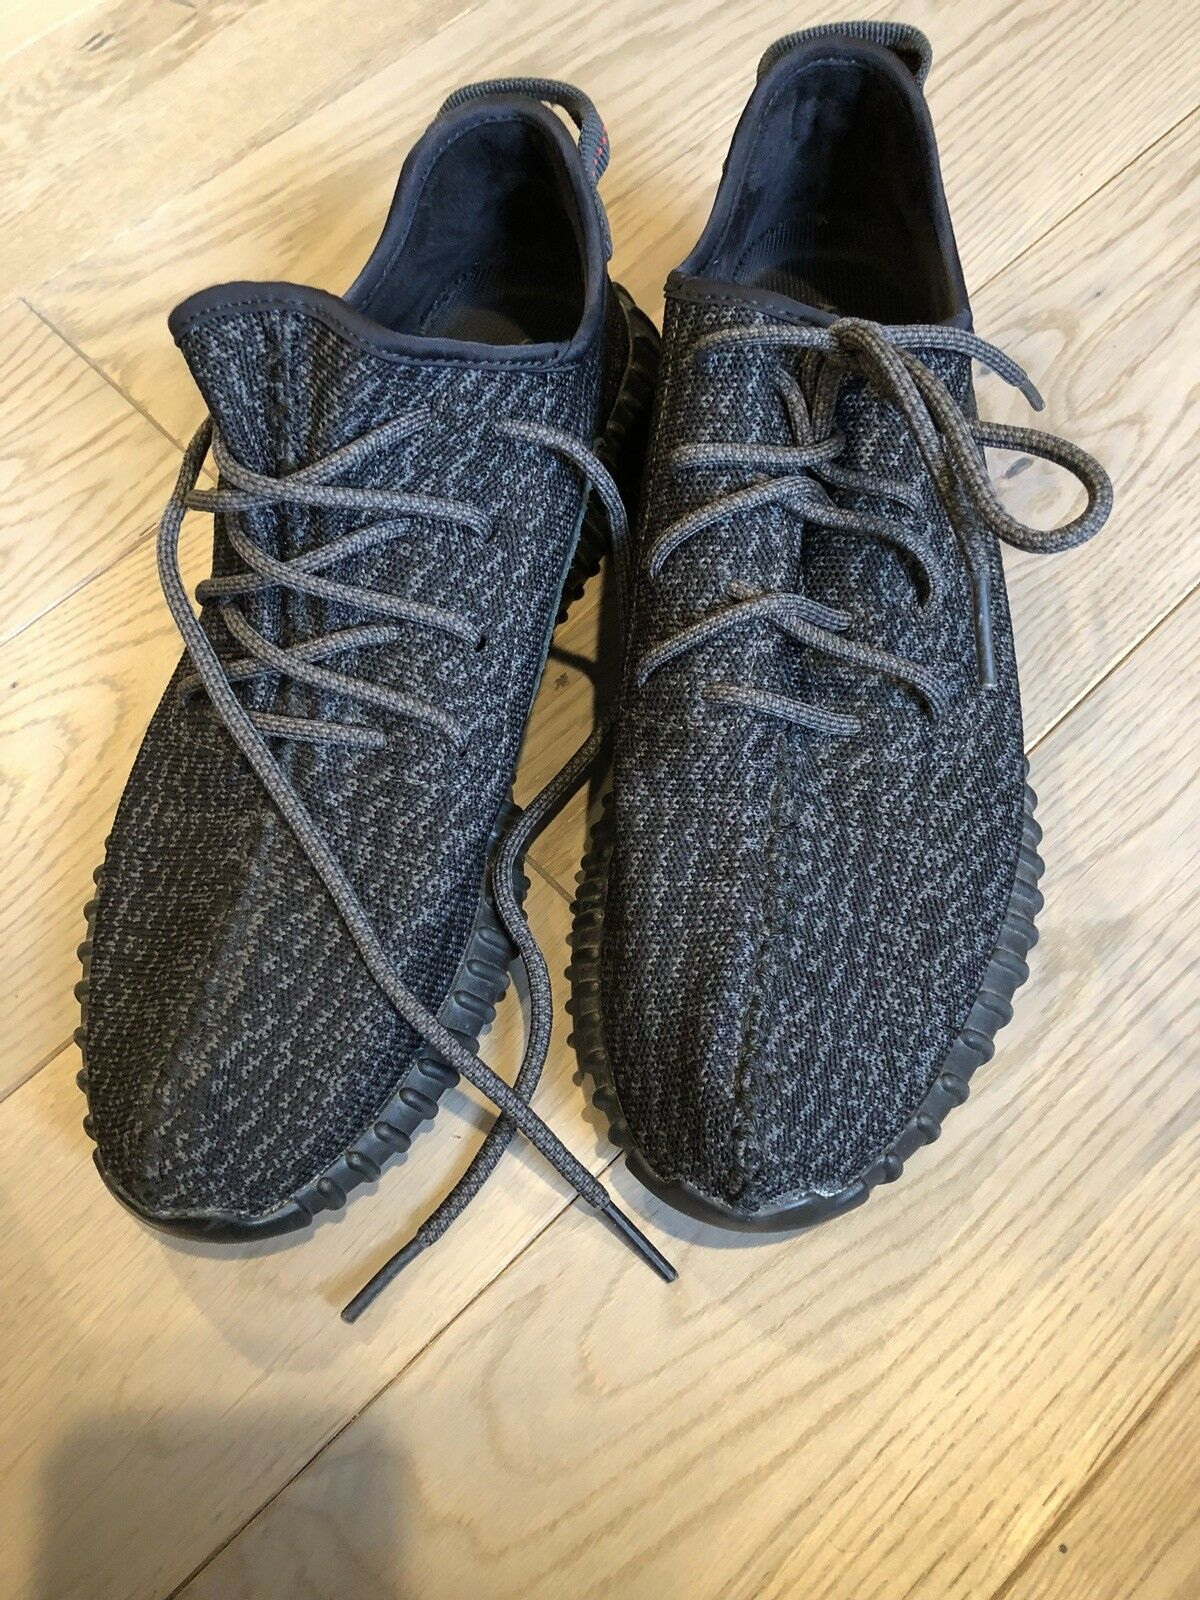 Yeezy boost 350 pirate black size 12